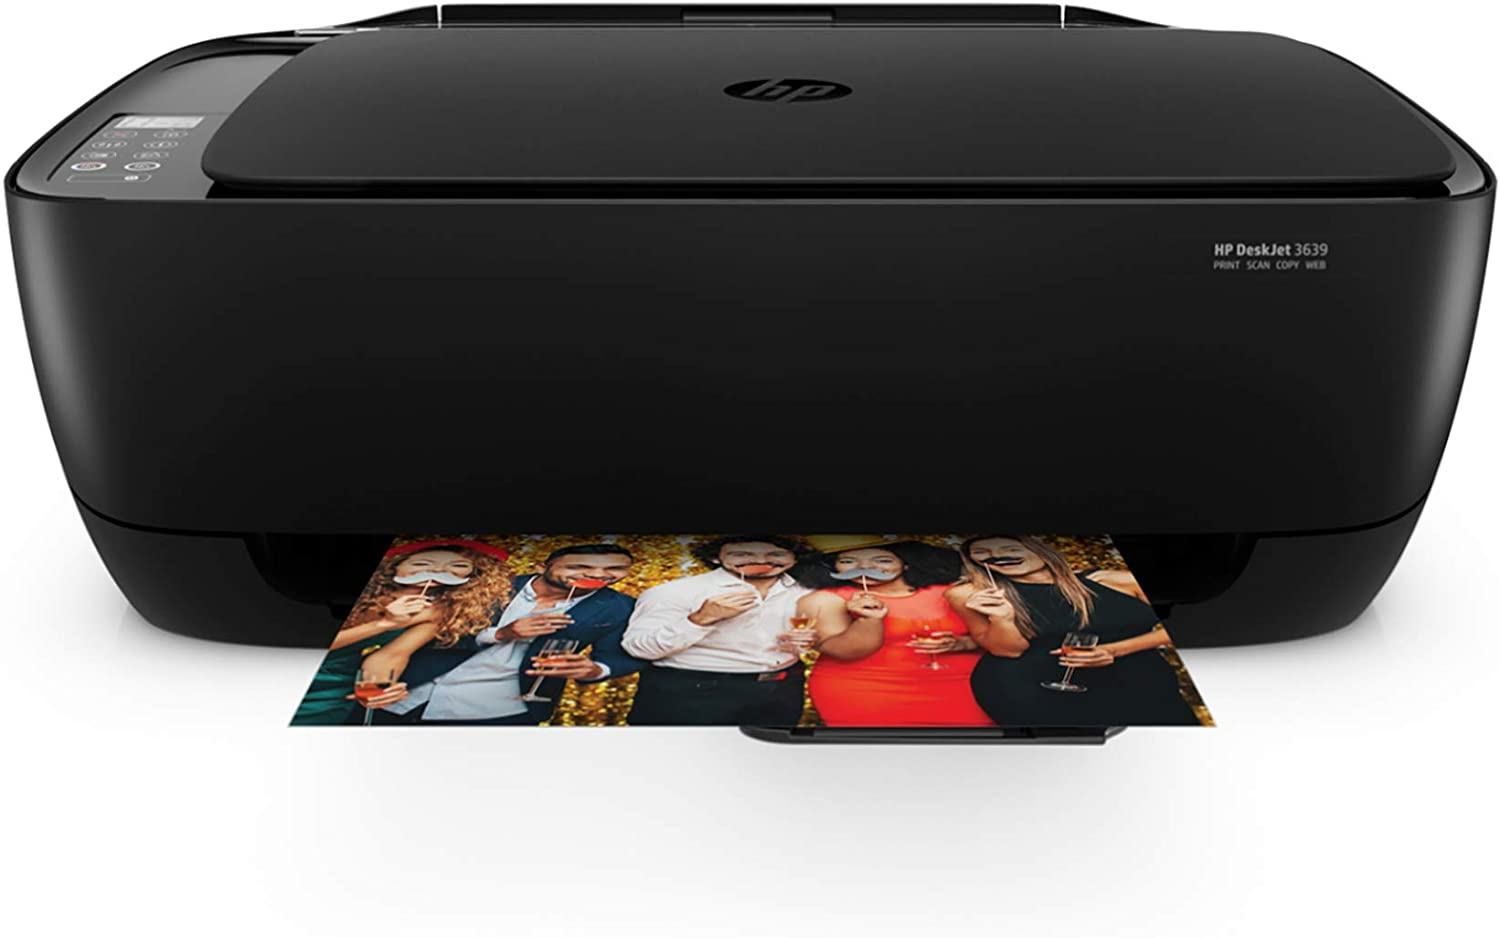 HP DeskJet 3639 Wireless All-in-One Printer, Compatible with Alexa (K4T98A)